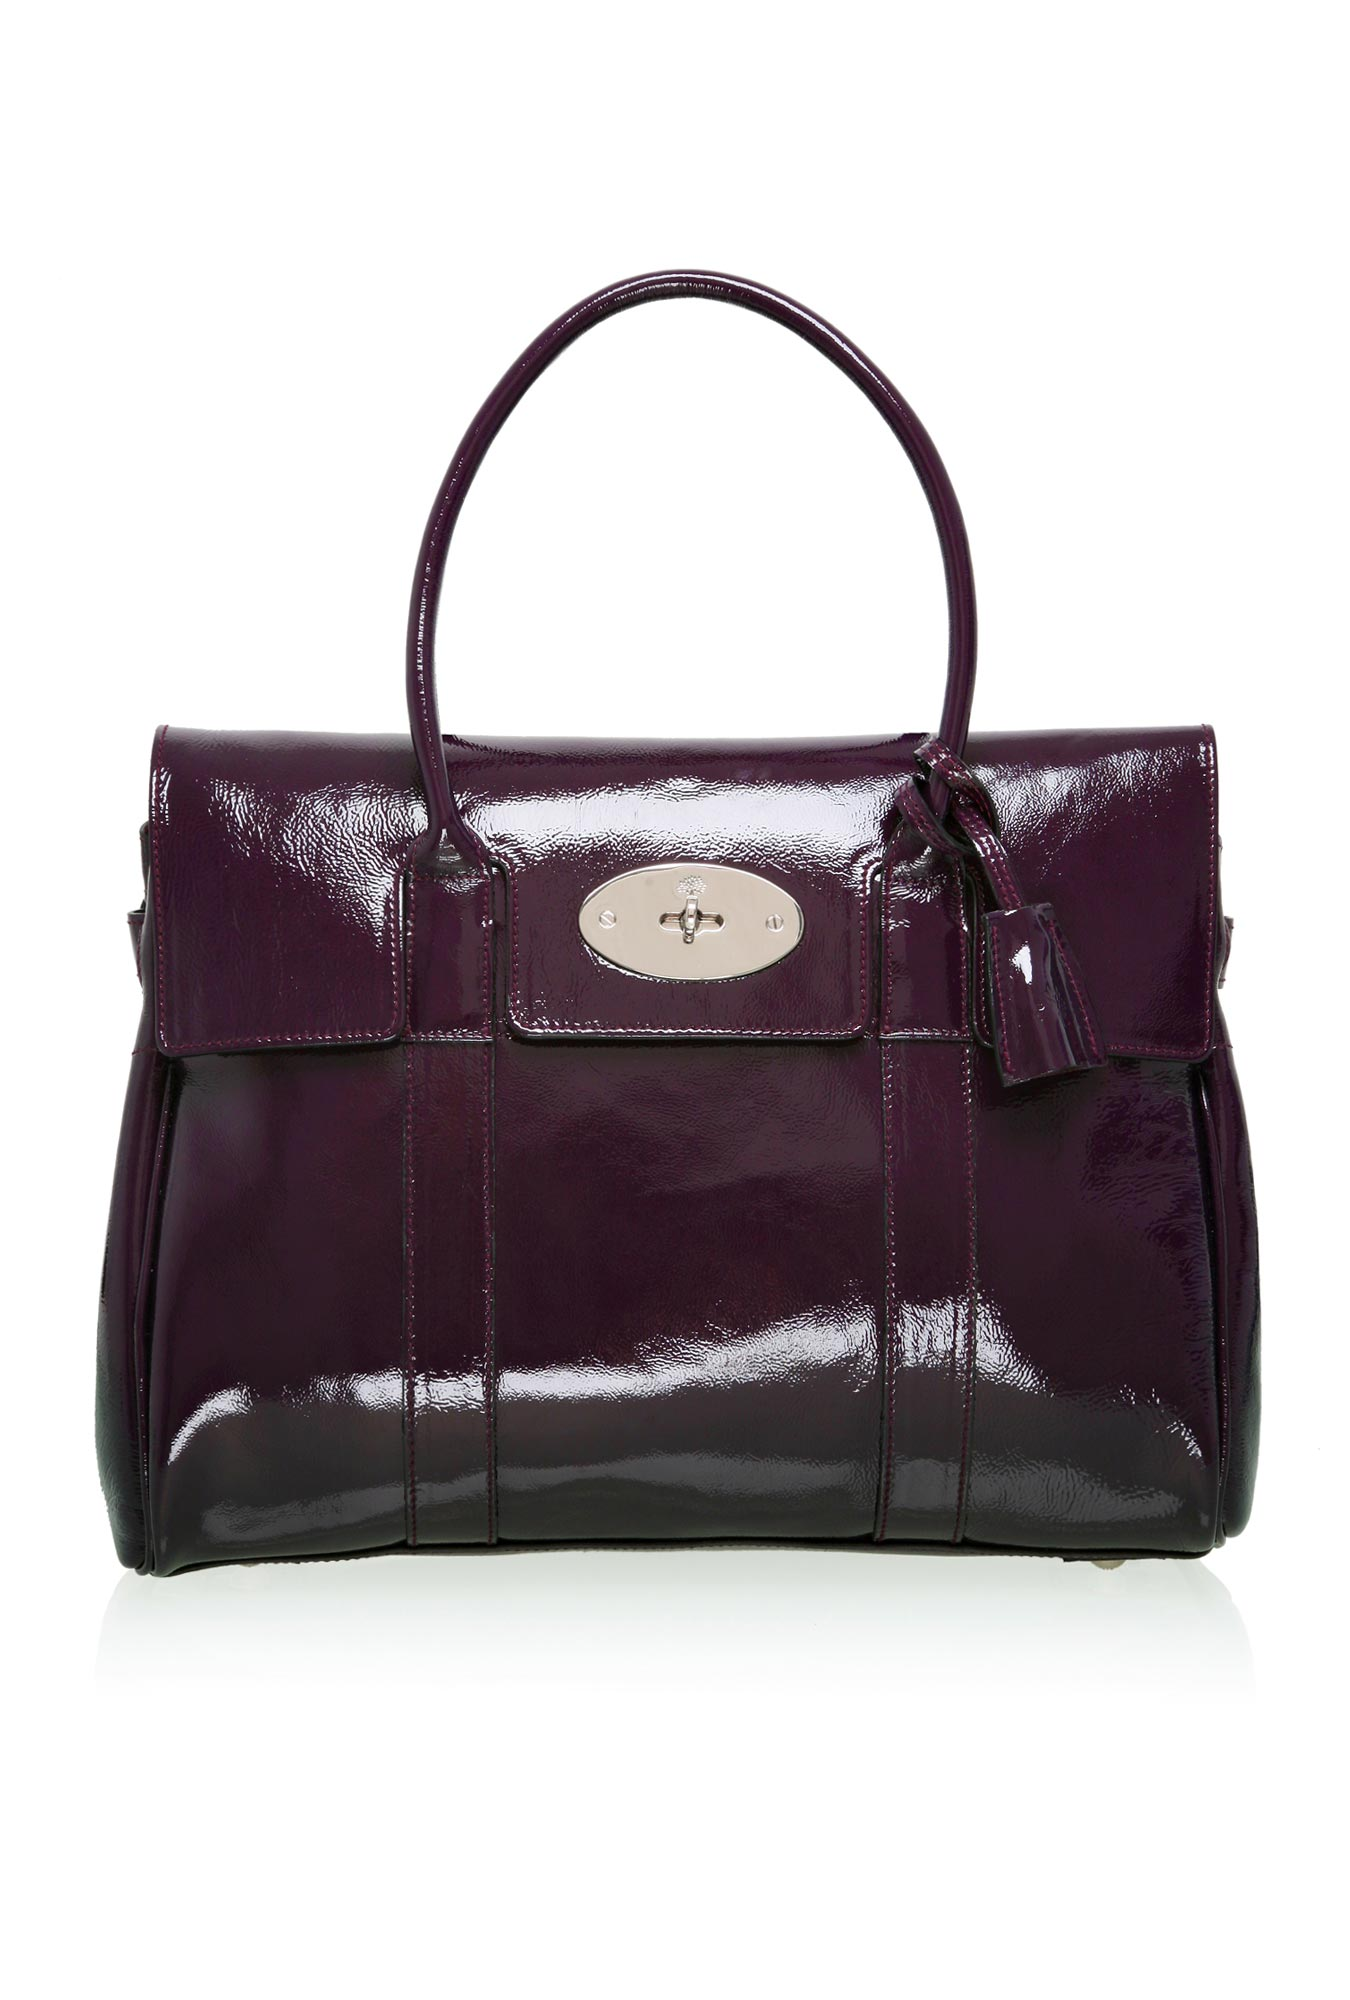 Catch of the day: Mulberry bag